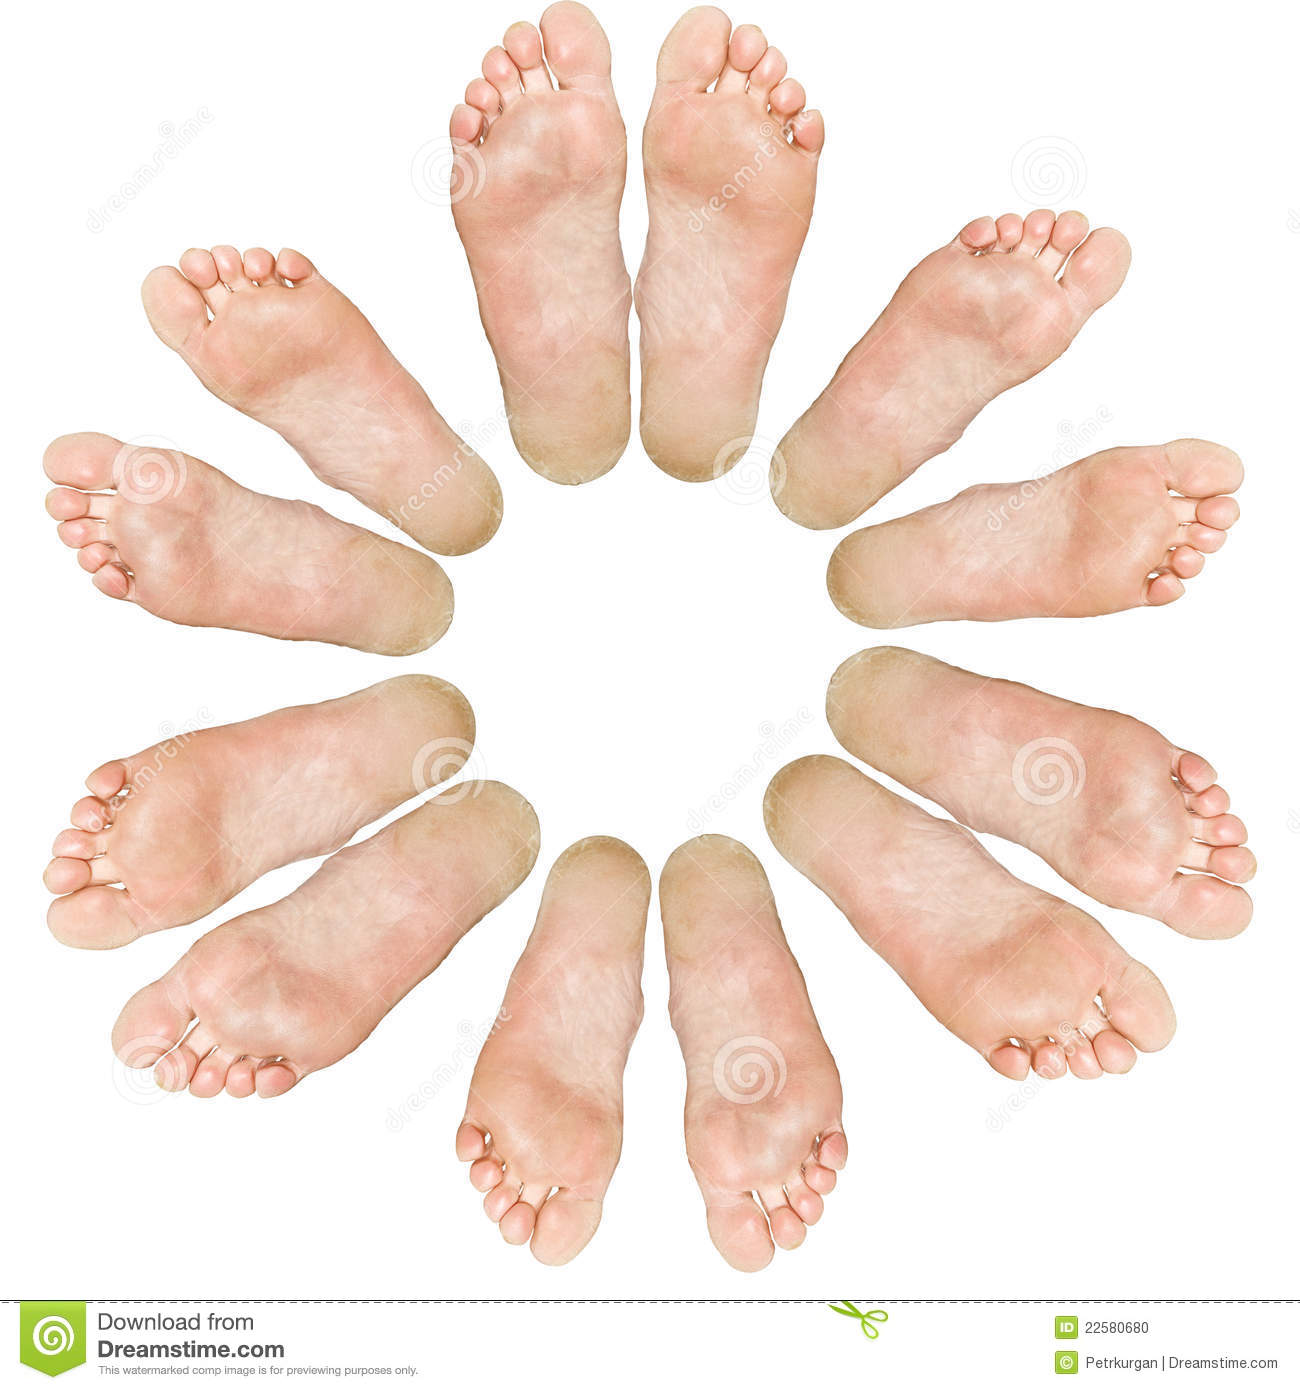 The large and small feet. Circle. Isolated over white background.